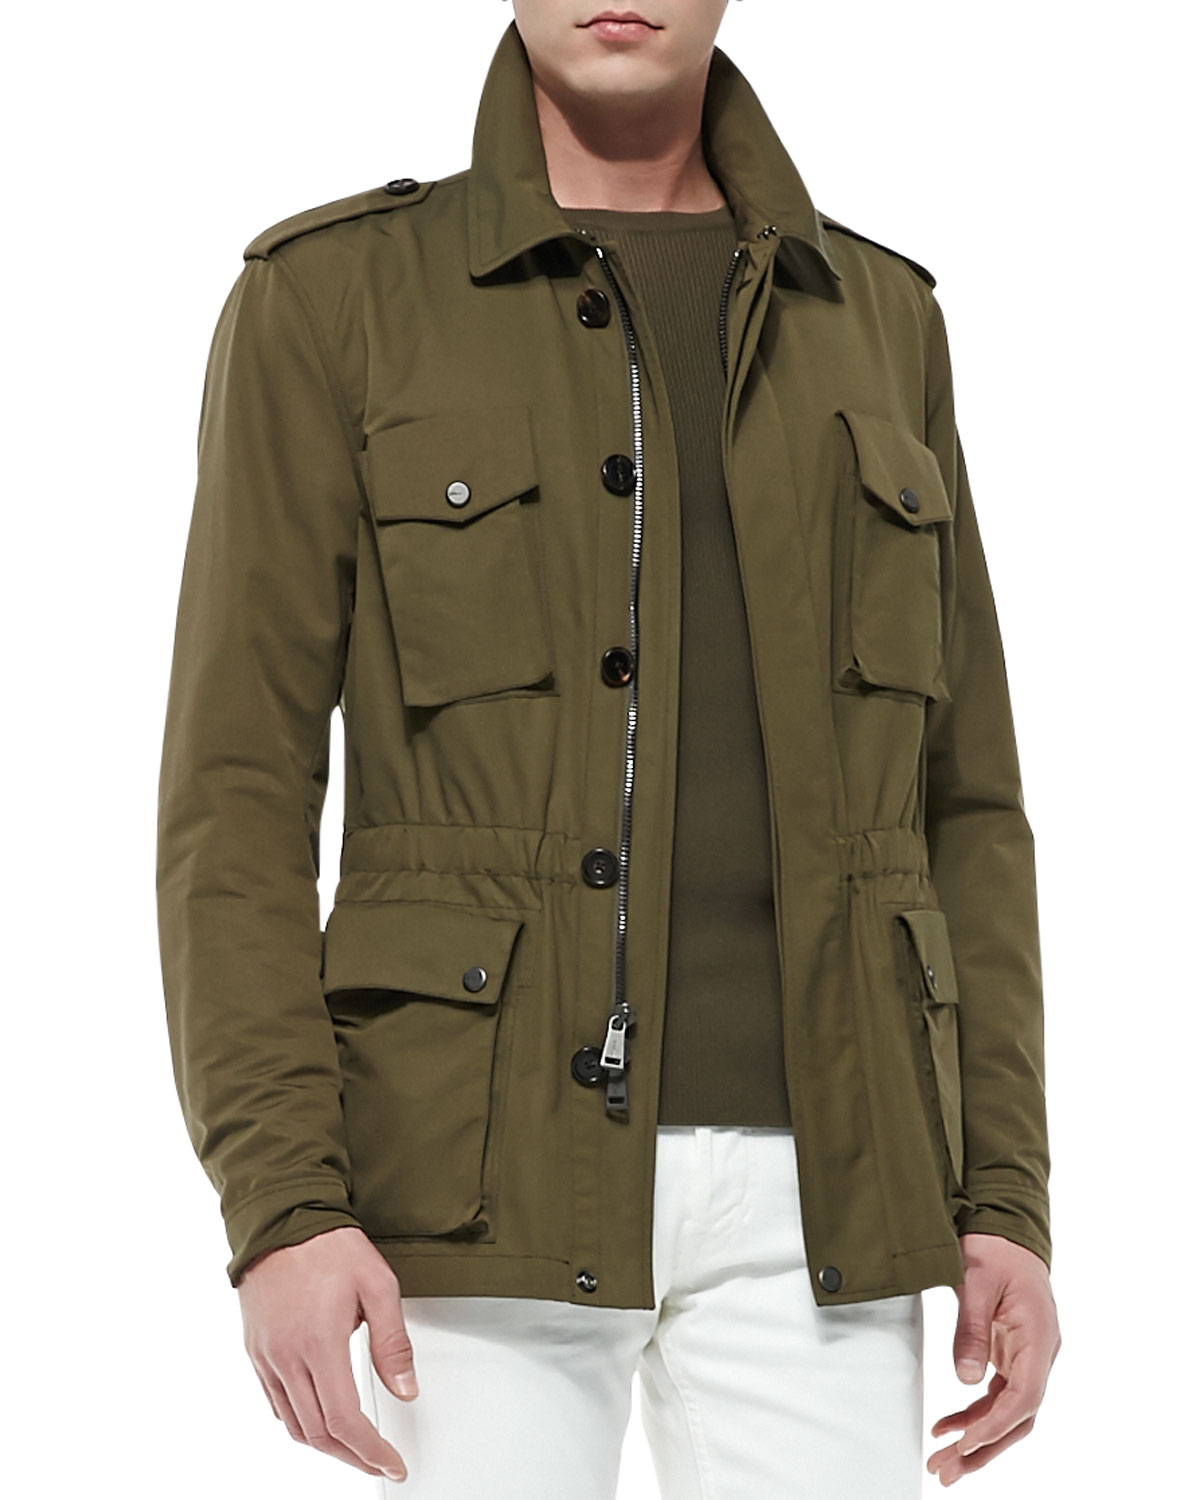 Vintage Style Safari Coats. Based on british military styles from the turn of the century, the safari jacket is an iconic style from late victorian times, and one of the most commonly known jackets .